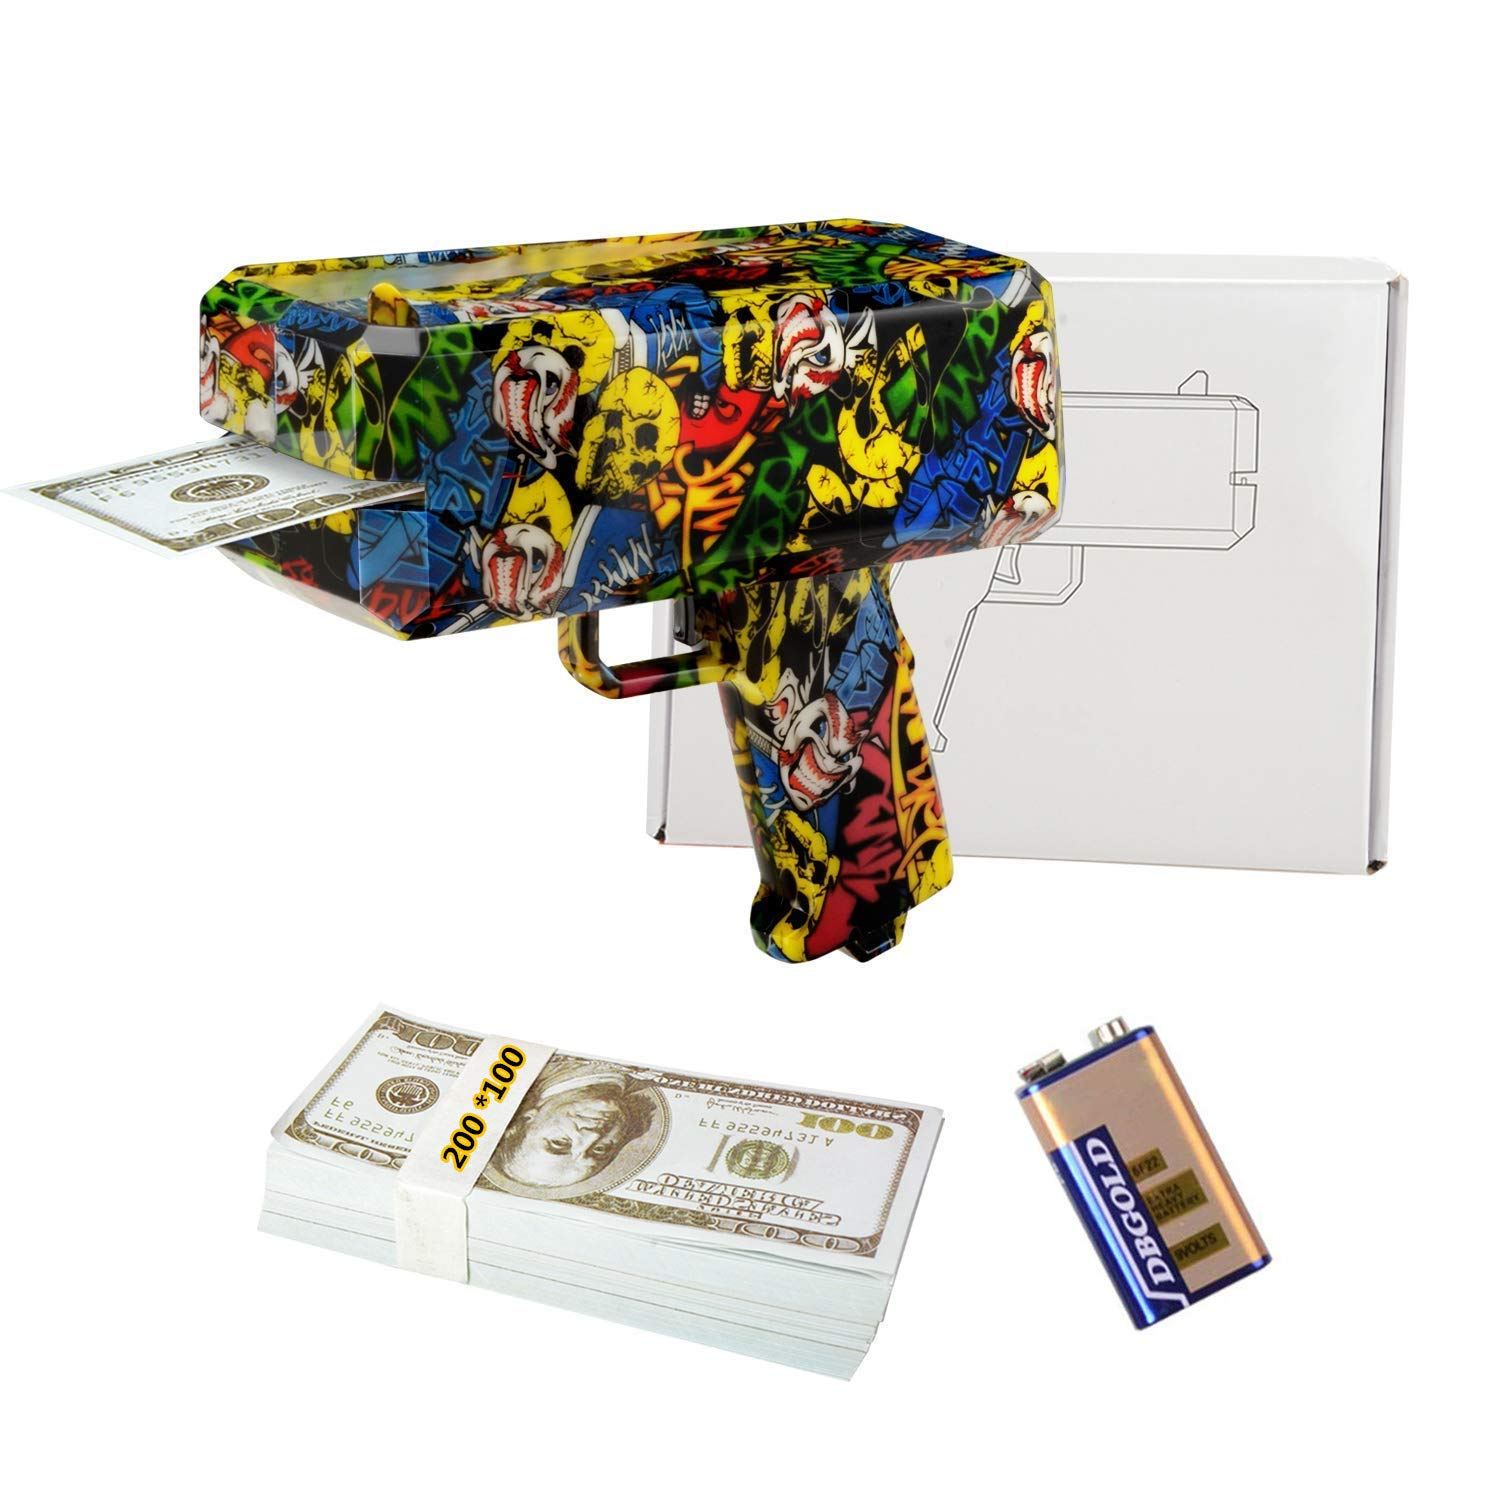 DDGG Make It Rain Money Gun Cash Gun Christmas Gift Cash*200 by DDGG (Image #1)